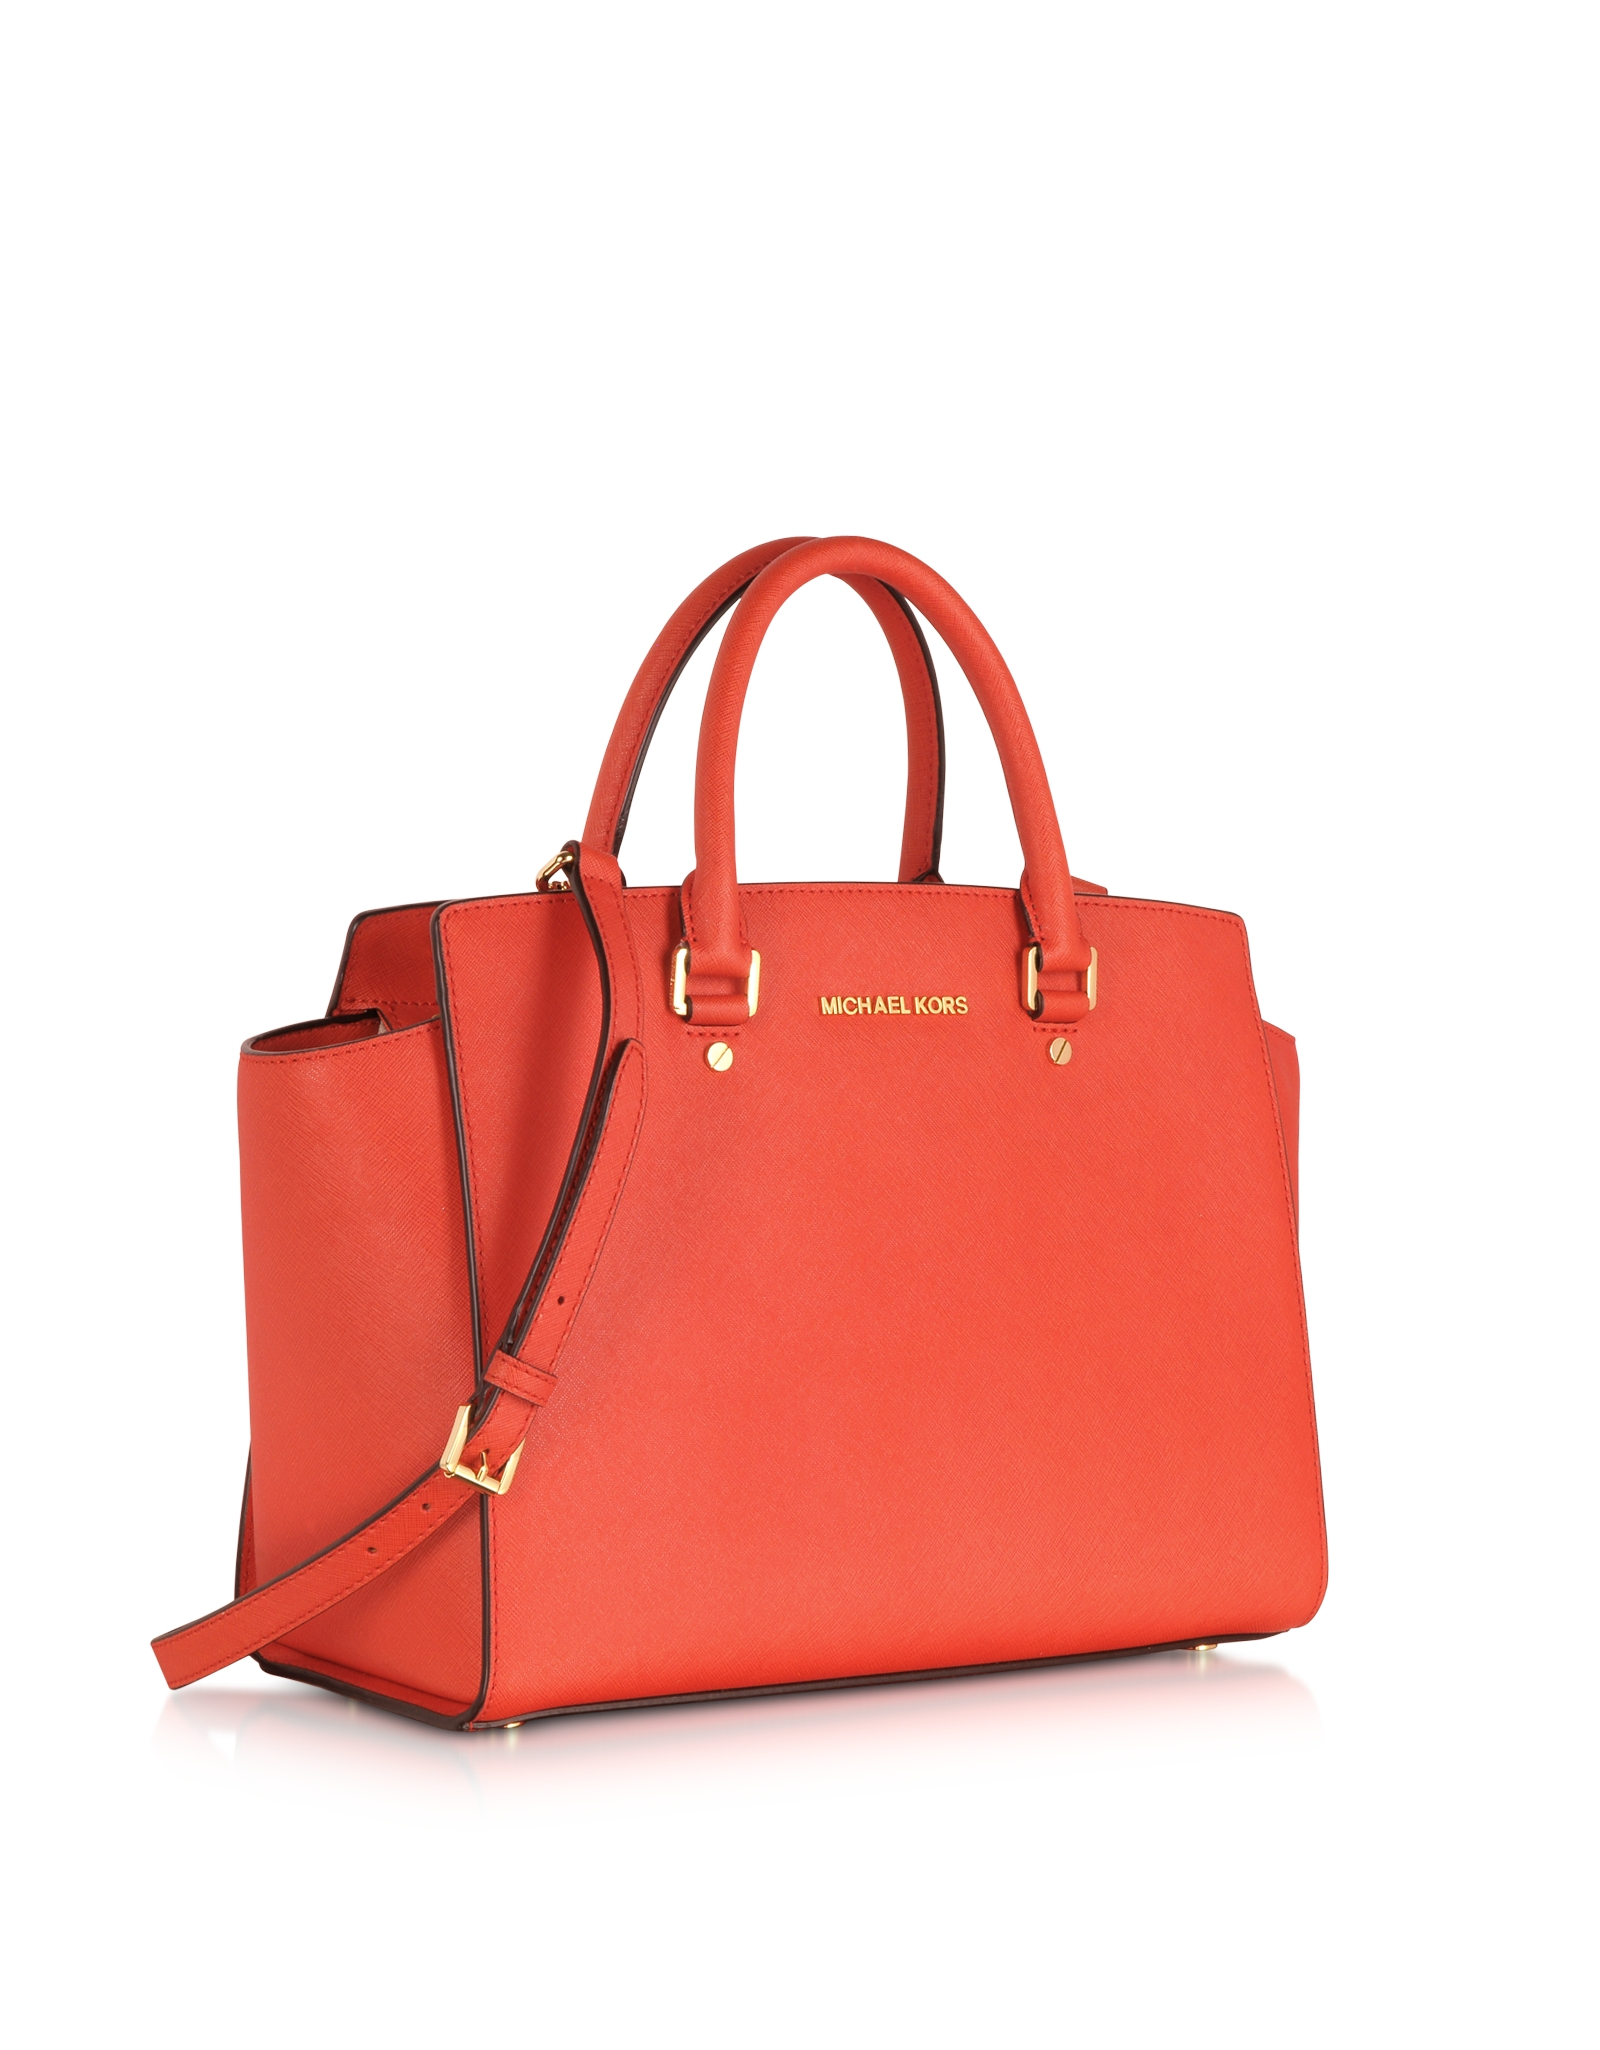 michael kors mandarin large selma topzip saffiano leather satchel in red lyst. Black Bedroom Furniture Sets. Home Design Ideas